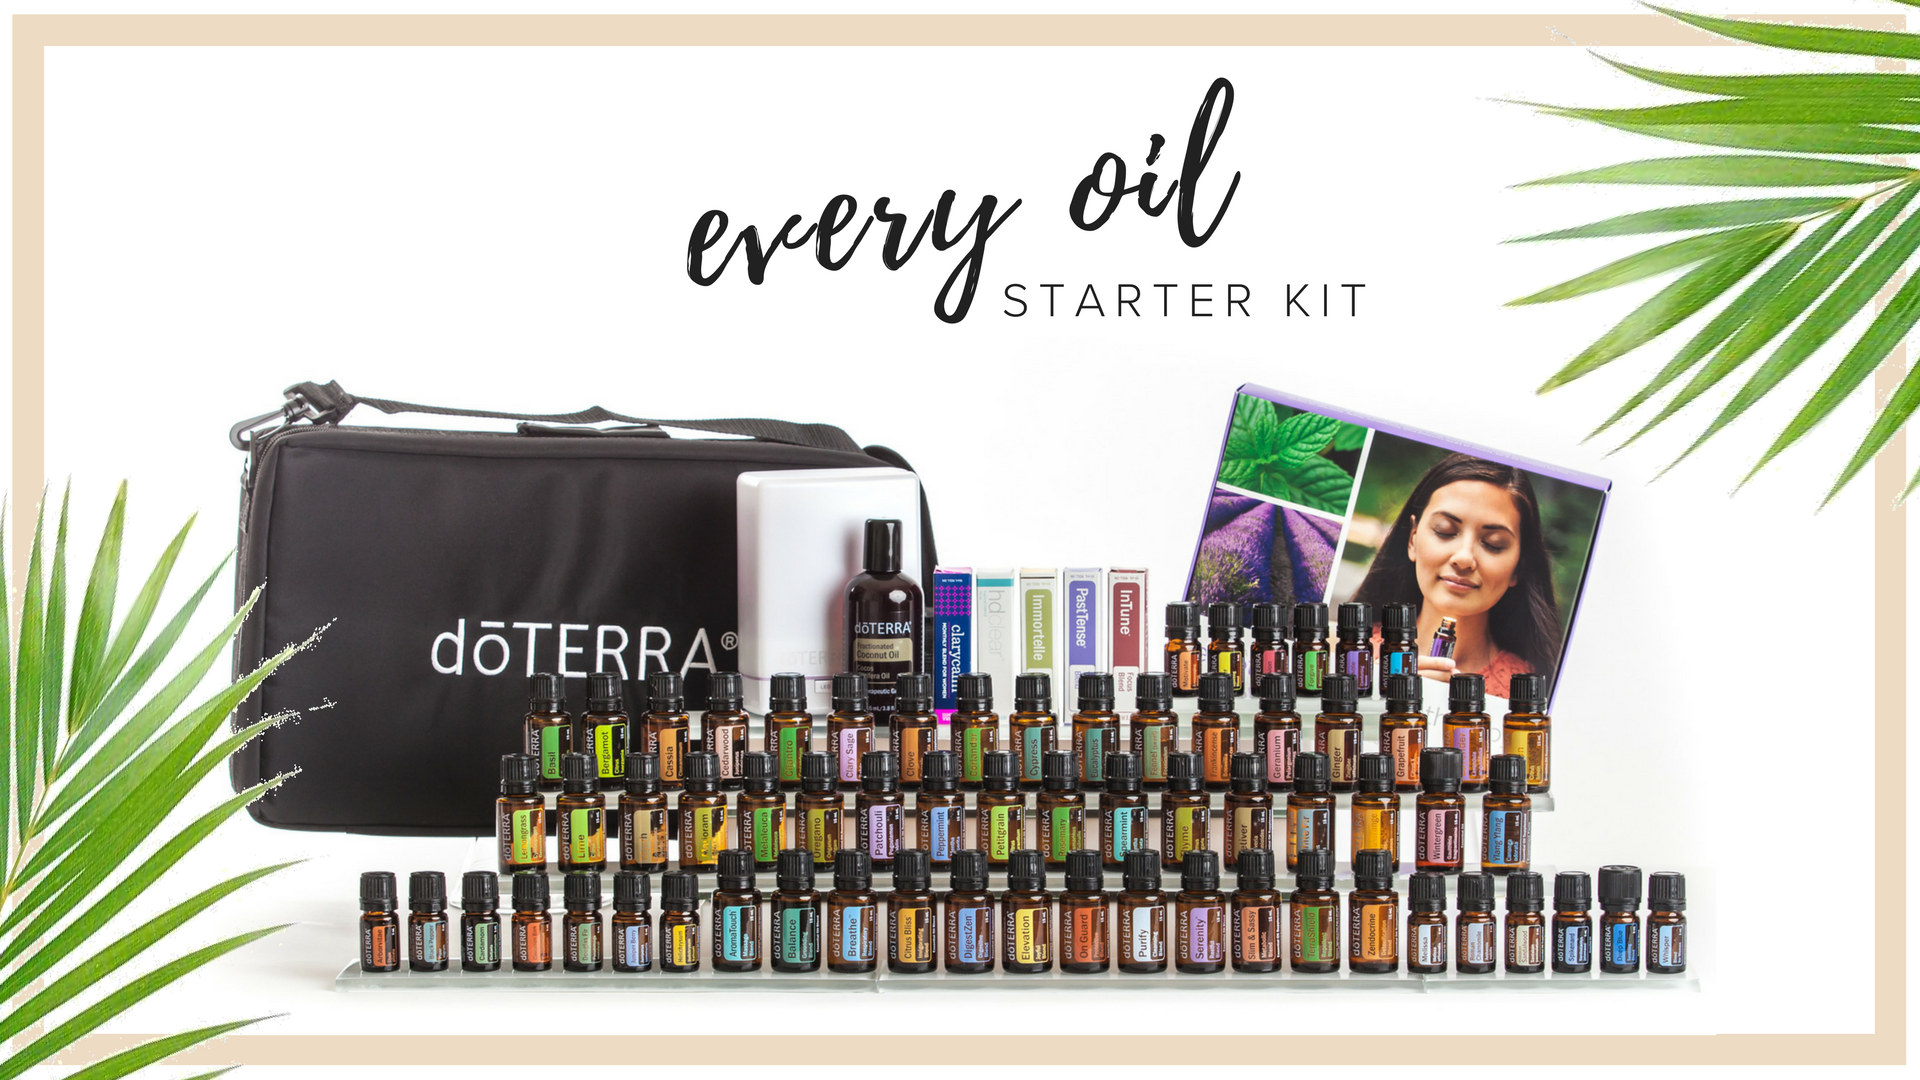 EVERY OIL KIT - $1,825  This kit Contains every single oil that doterra sources, so if you are one of those people who needs to have every single oil so you can hit the ground running and make all the blends you've been reading about, this is the kit for you. You will also receive an 8 hour diffuser and a travel case to hold all your precious oils.  Retail Cost $2,433. Wholesale Kit Price $1,825. $600 in Savings plus you're eligible to receive an additional $200 in product credits when you place your 100 pv Loyalty Rewards order the following month and you jump on the Fast track at 20%rebate on loyalty orders.  all new memberships include Exclusive aila love welcome gifts, a personal consultation with maile, ongoing education opportunities & a support community.